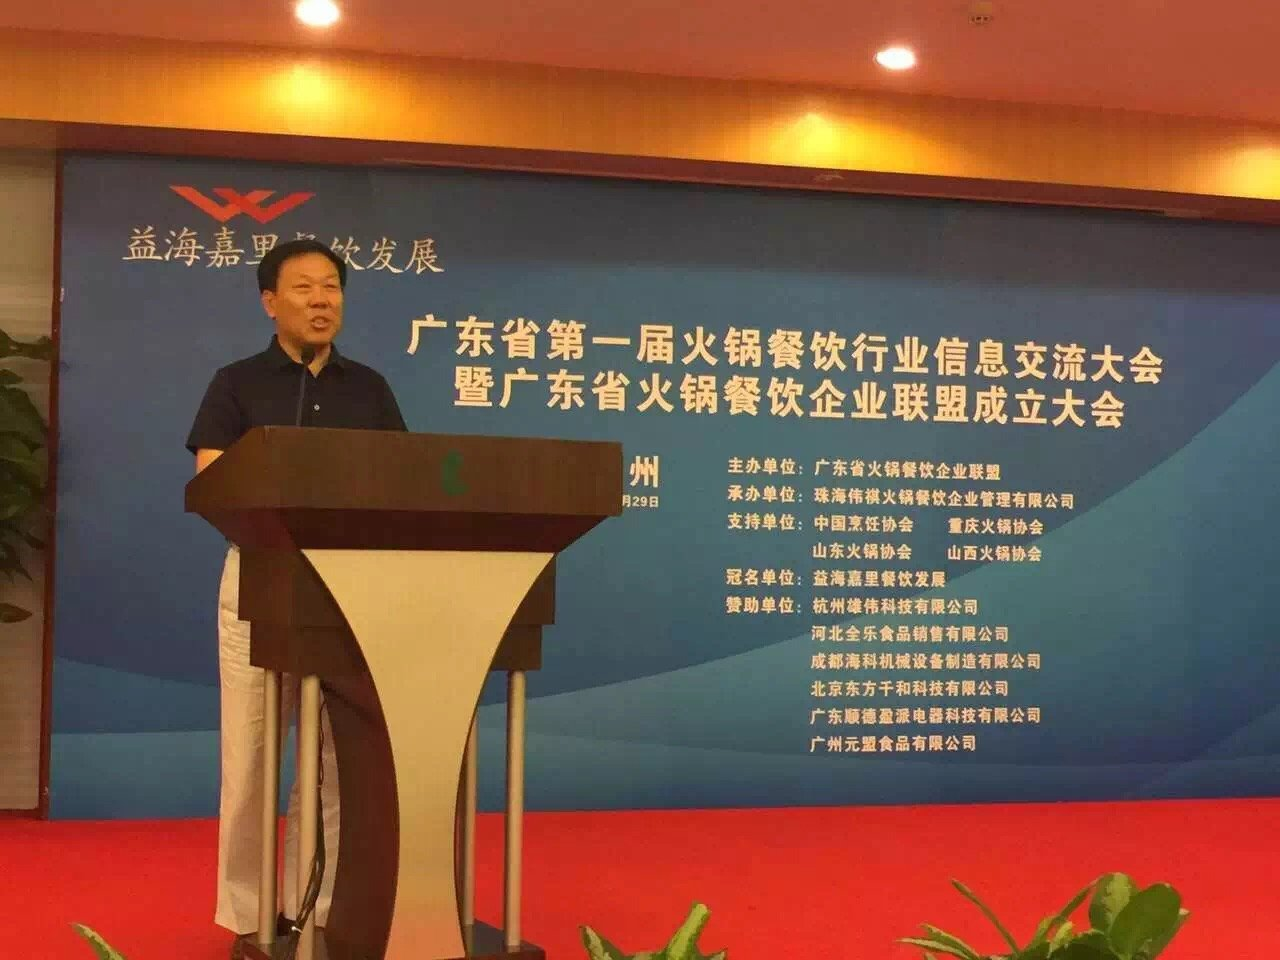 news-WINPAI-Guangdong Food Industry Conference and information exchange pot catering enterprises in